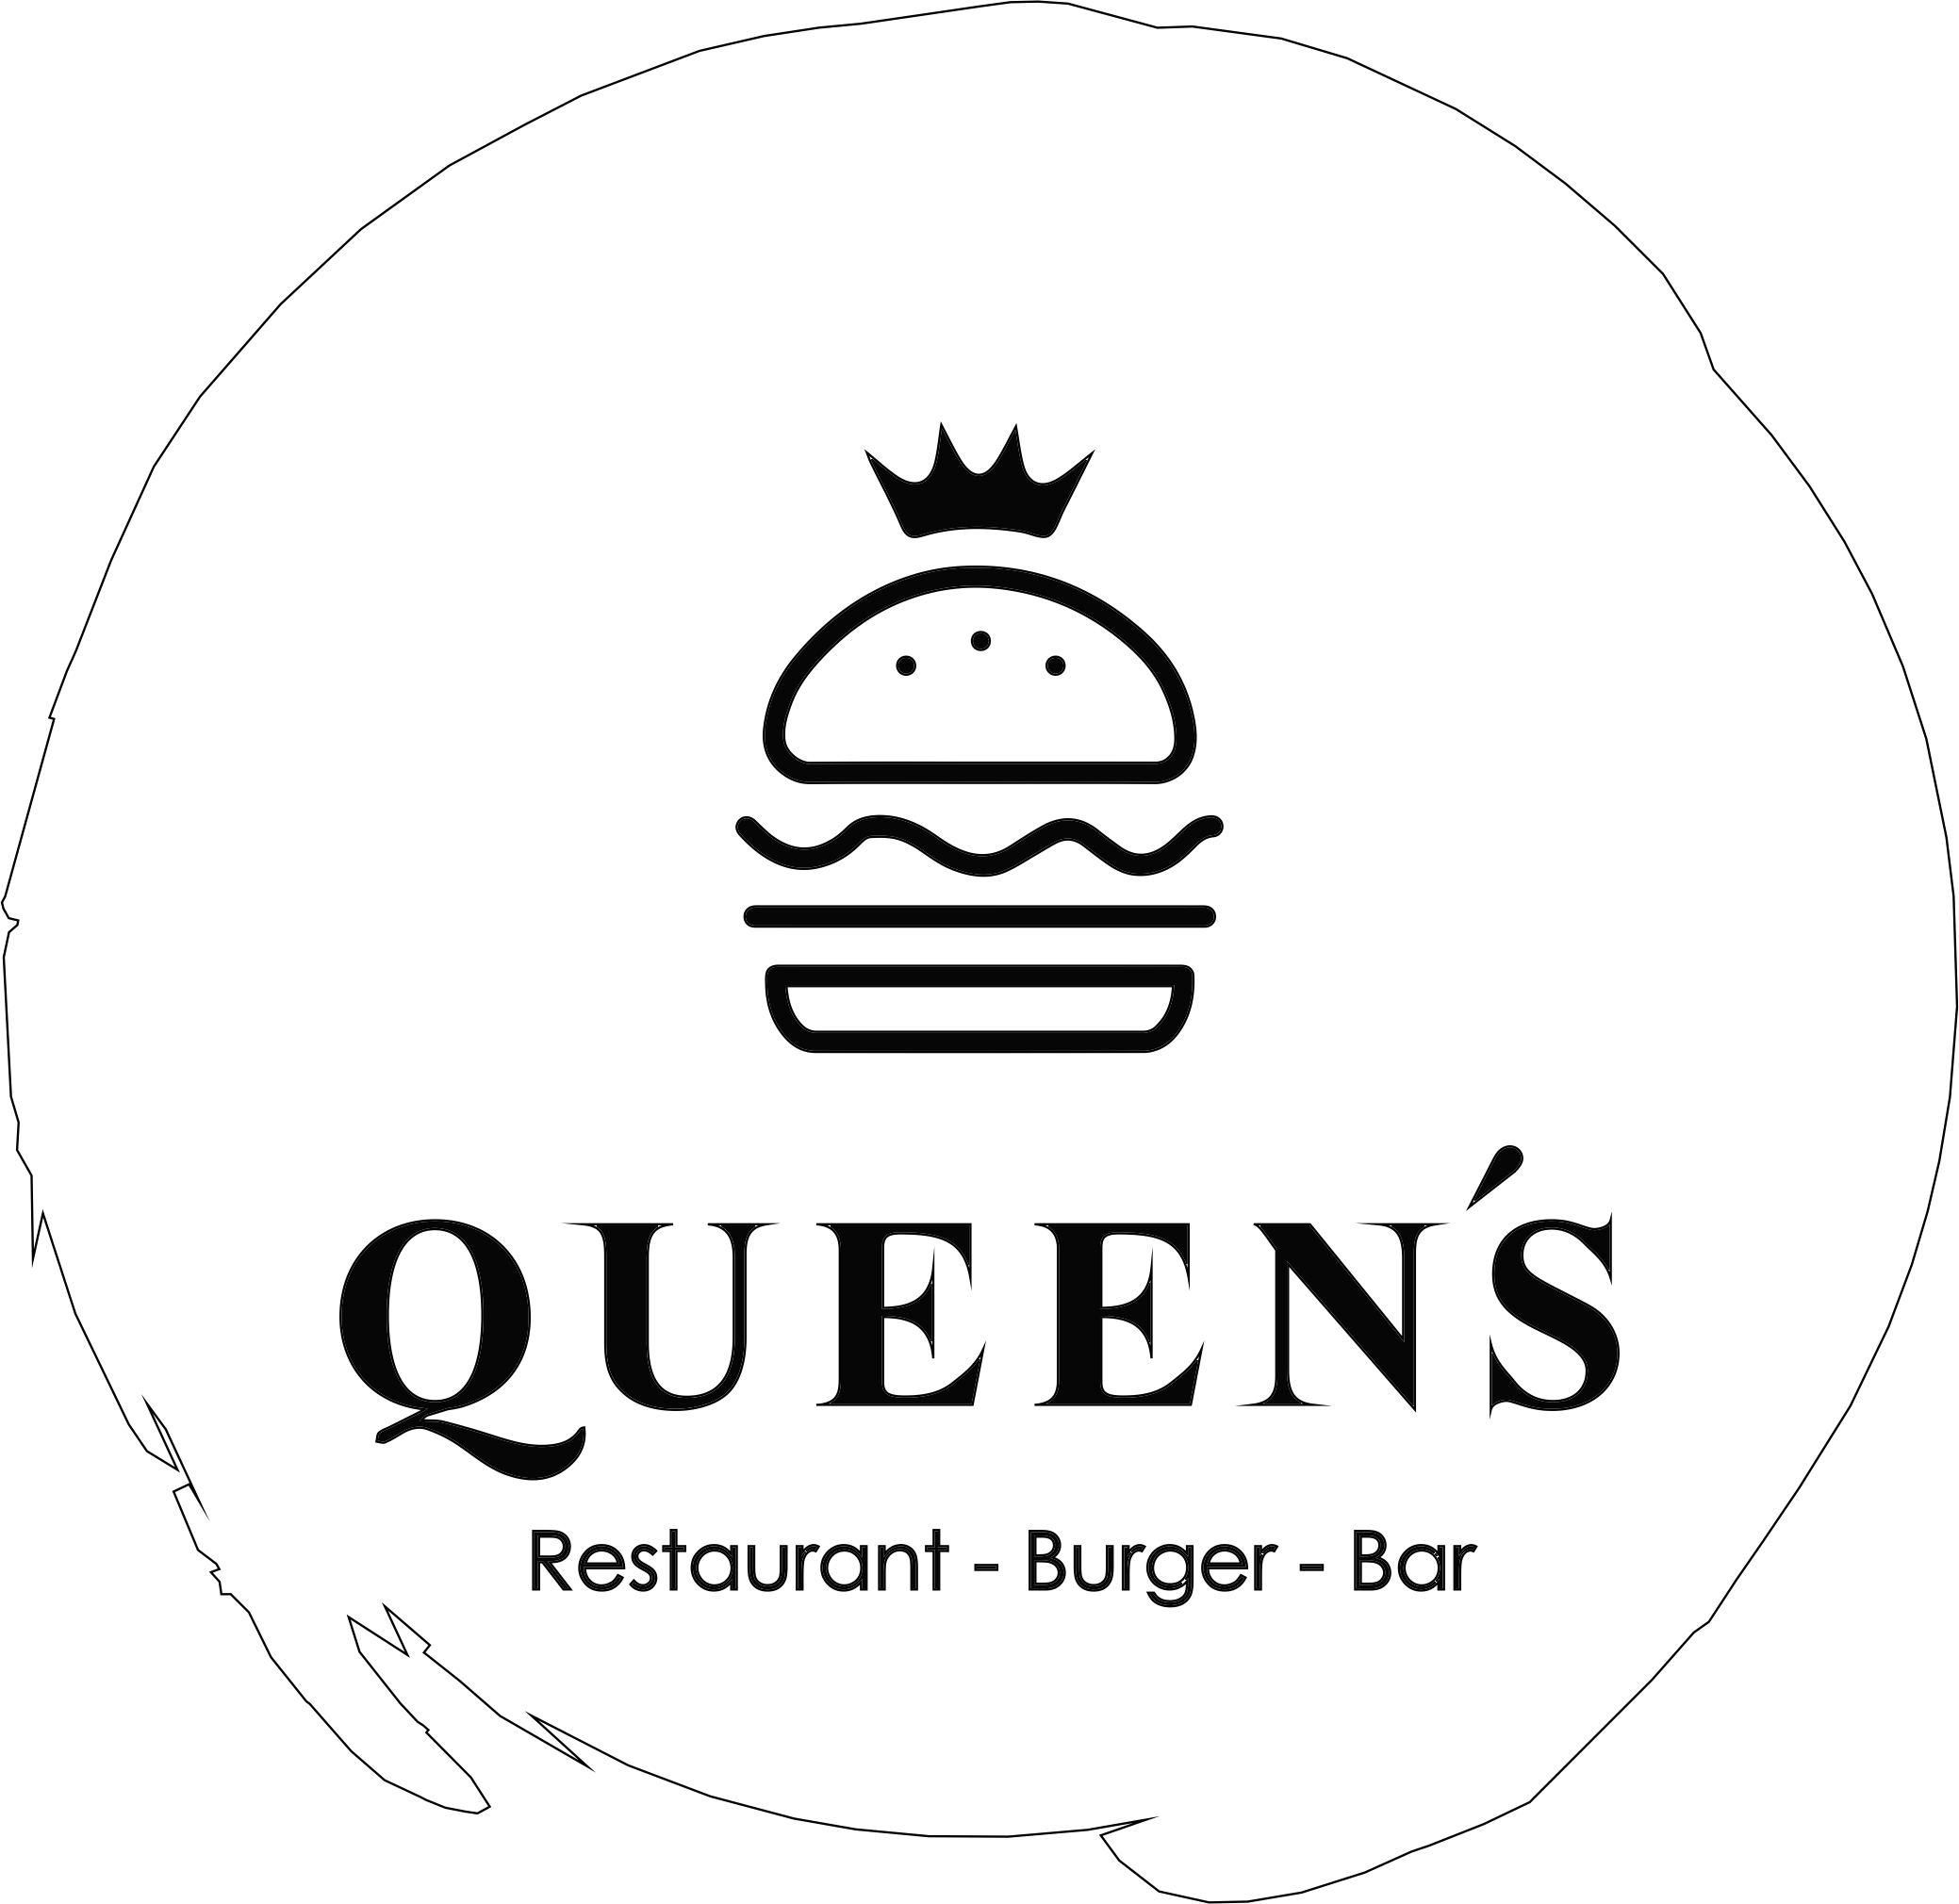 QUEEN's - Restaurant - Burger - Bar